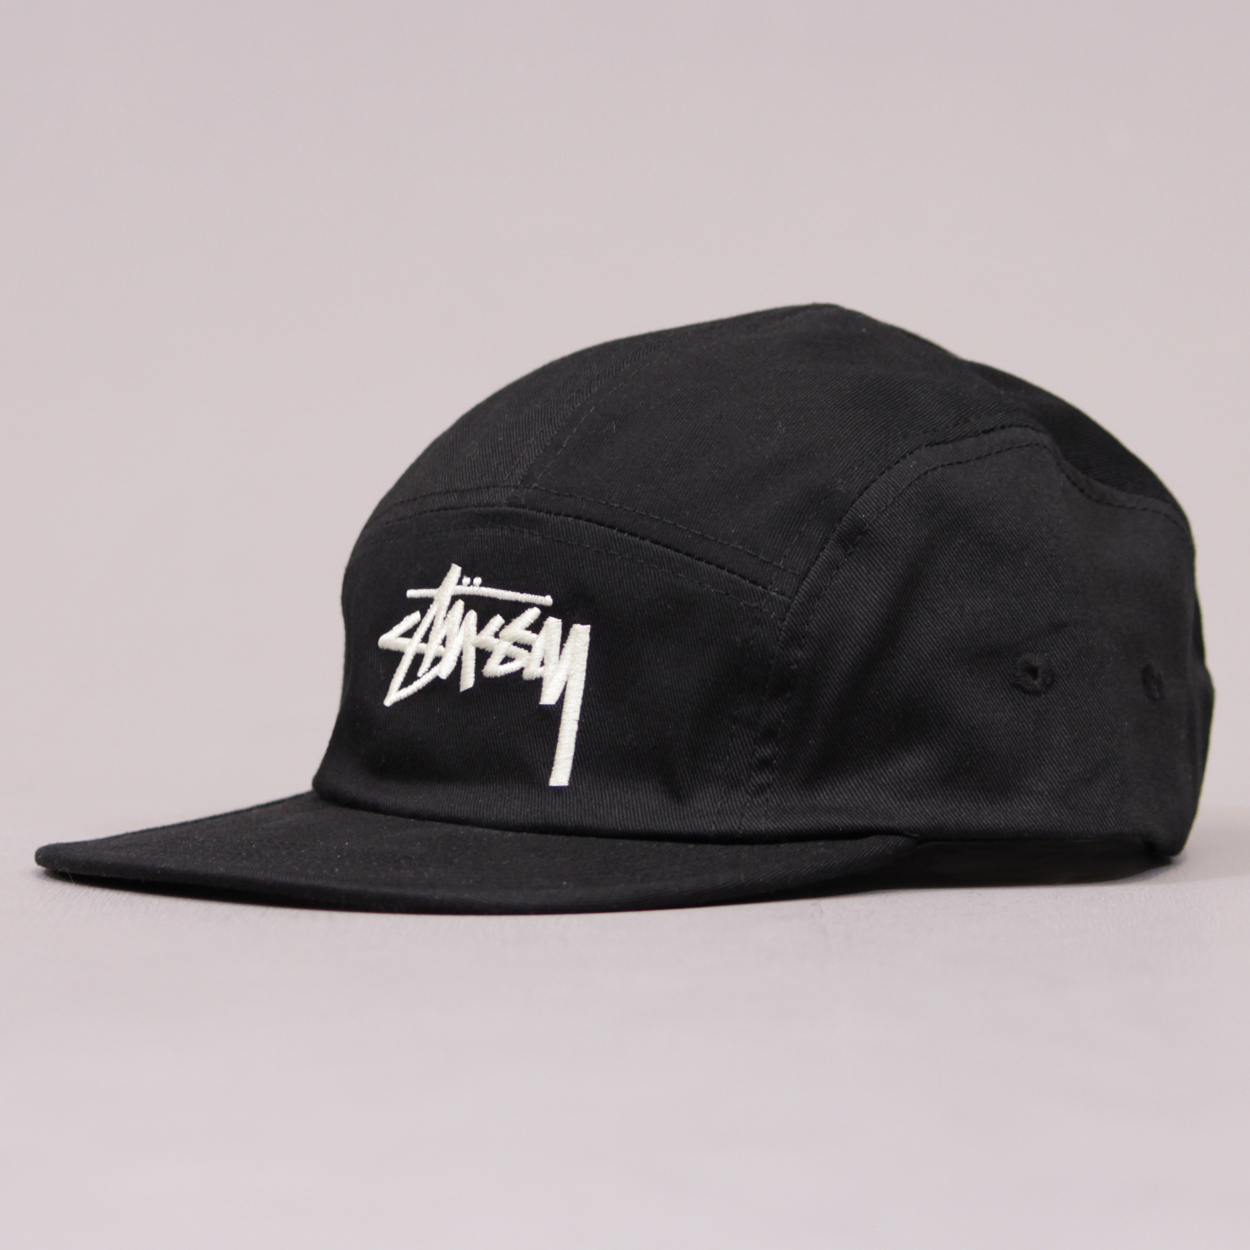 Stussy Men s Five 5 Panel Cap Hat Flatpeak Snapback Black £31.50 946013aa112